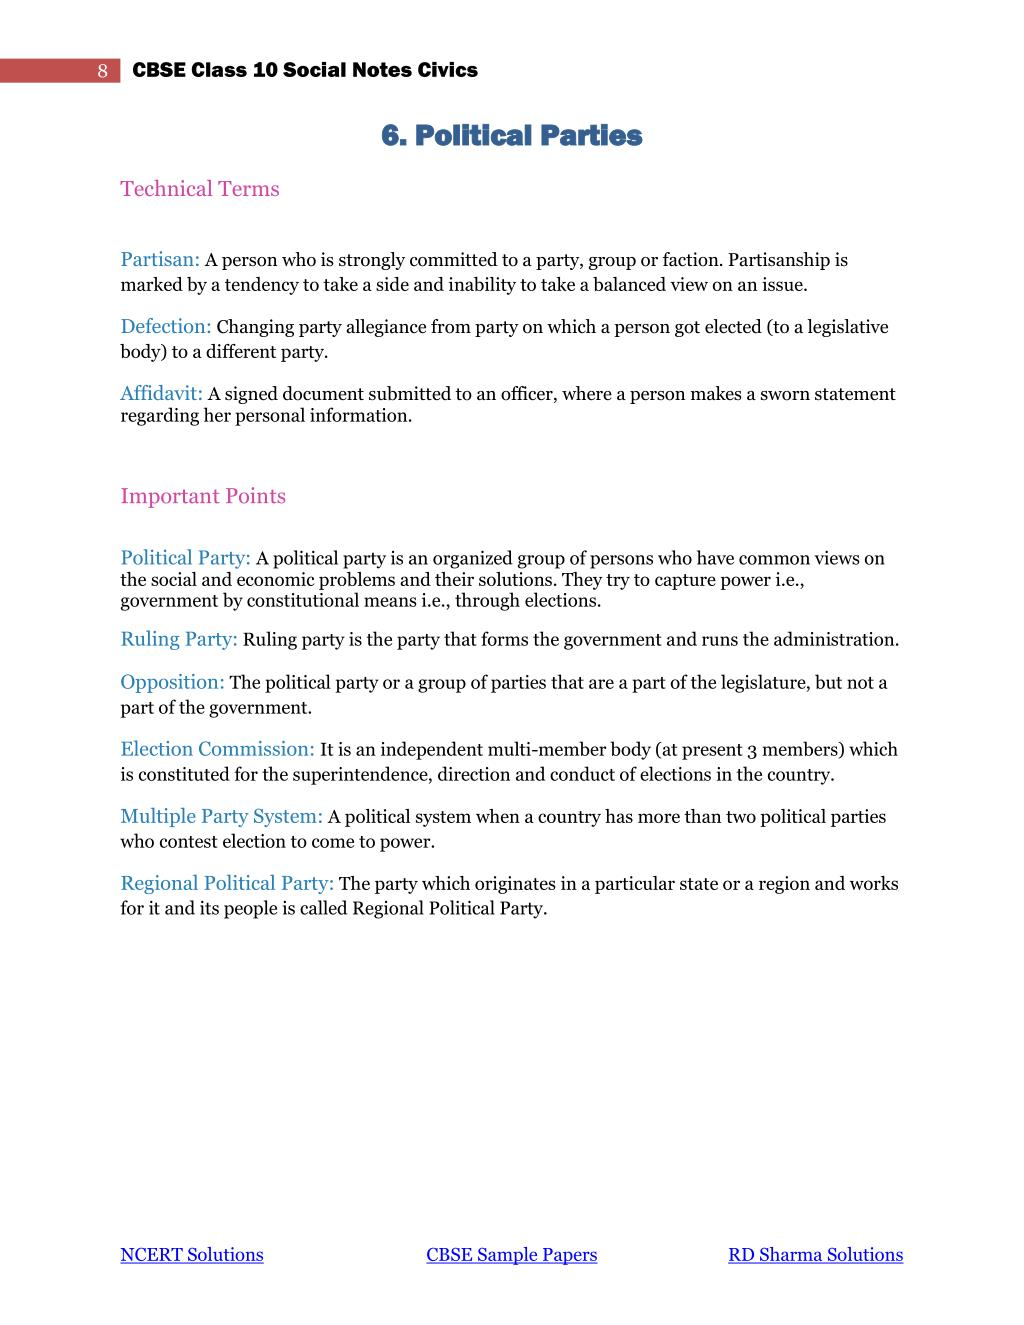 PPT - CBSE Class 10 Social Science Civics Notes PowerPoint